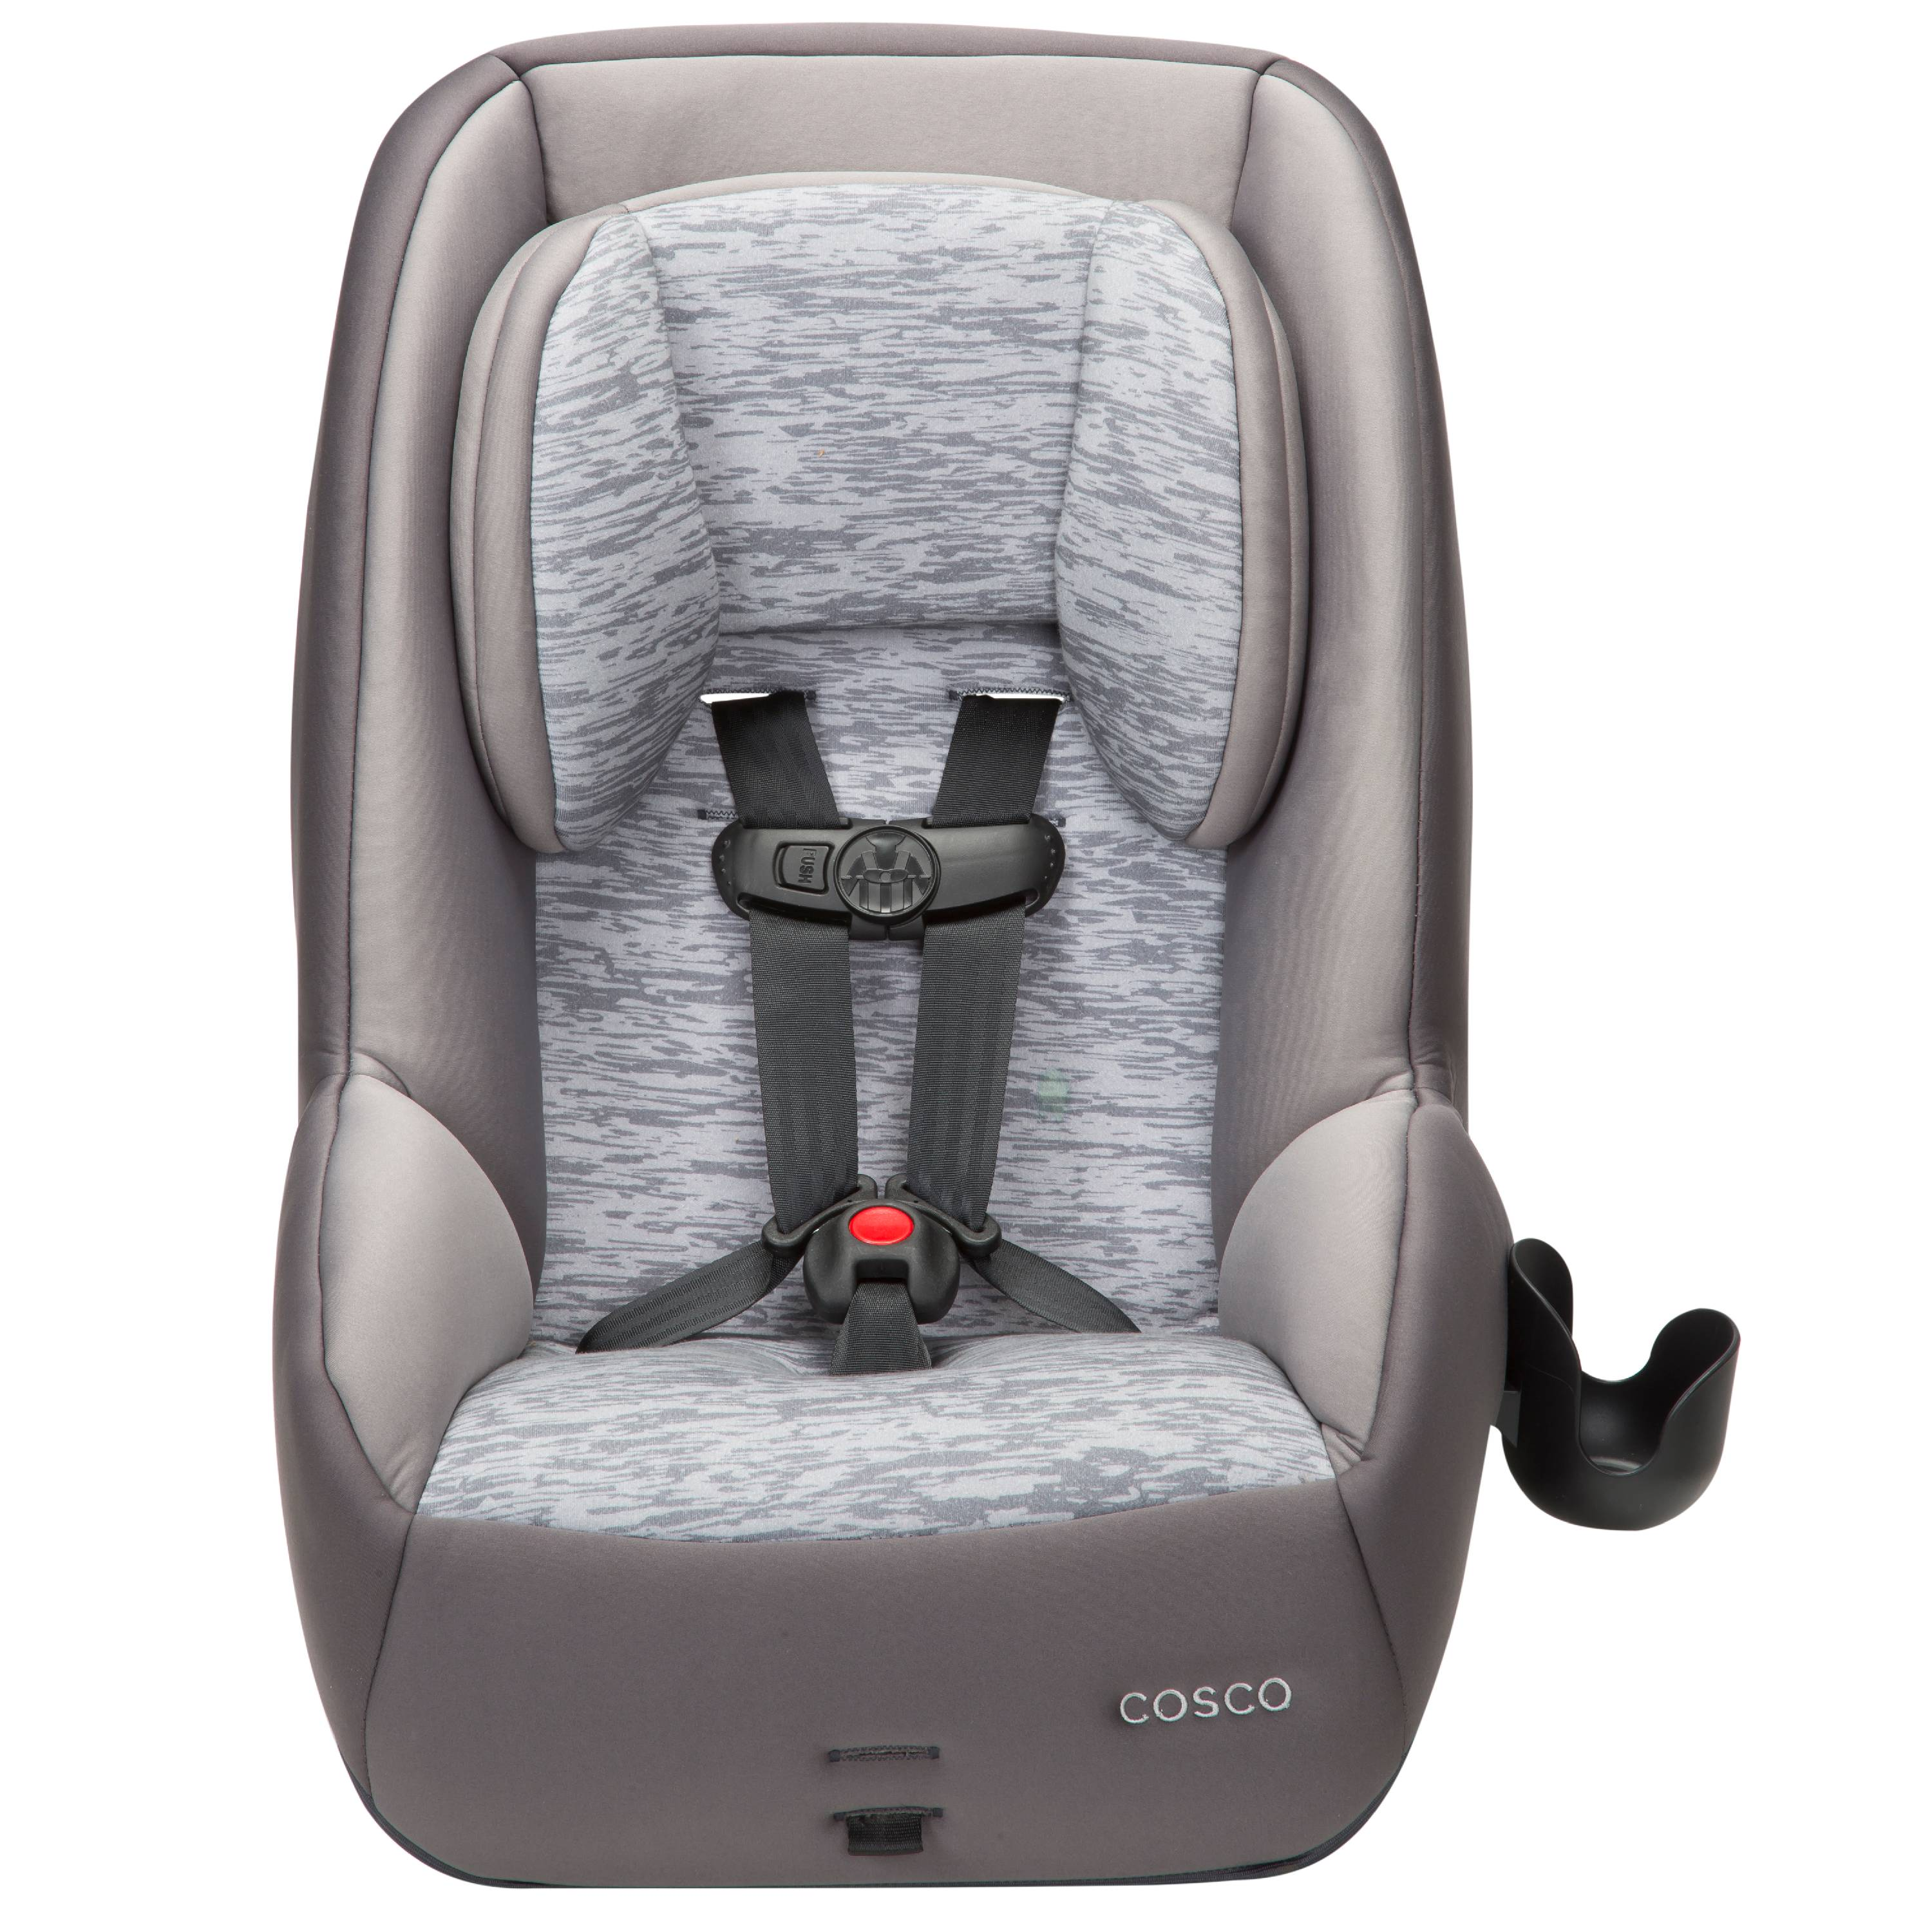 Cosco MightyFit 65 DX Convertible Car Seat